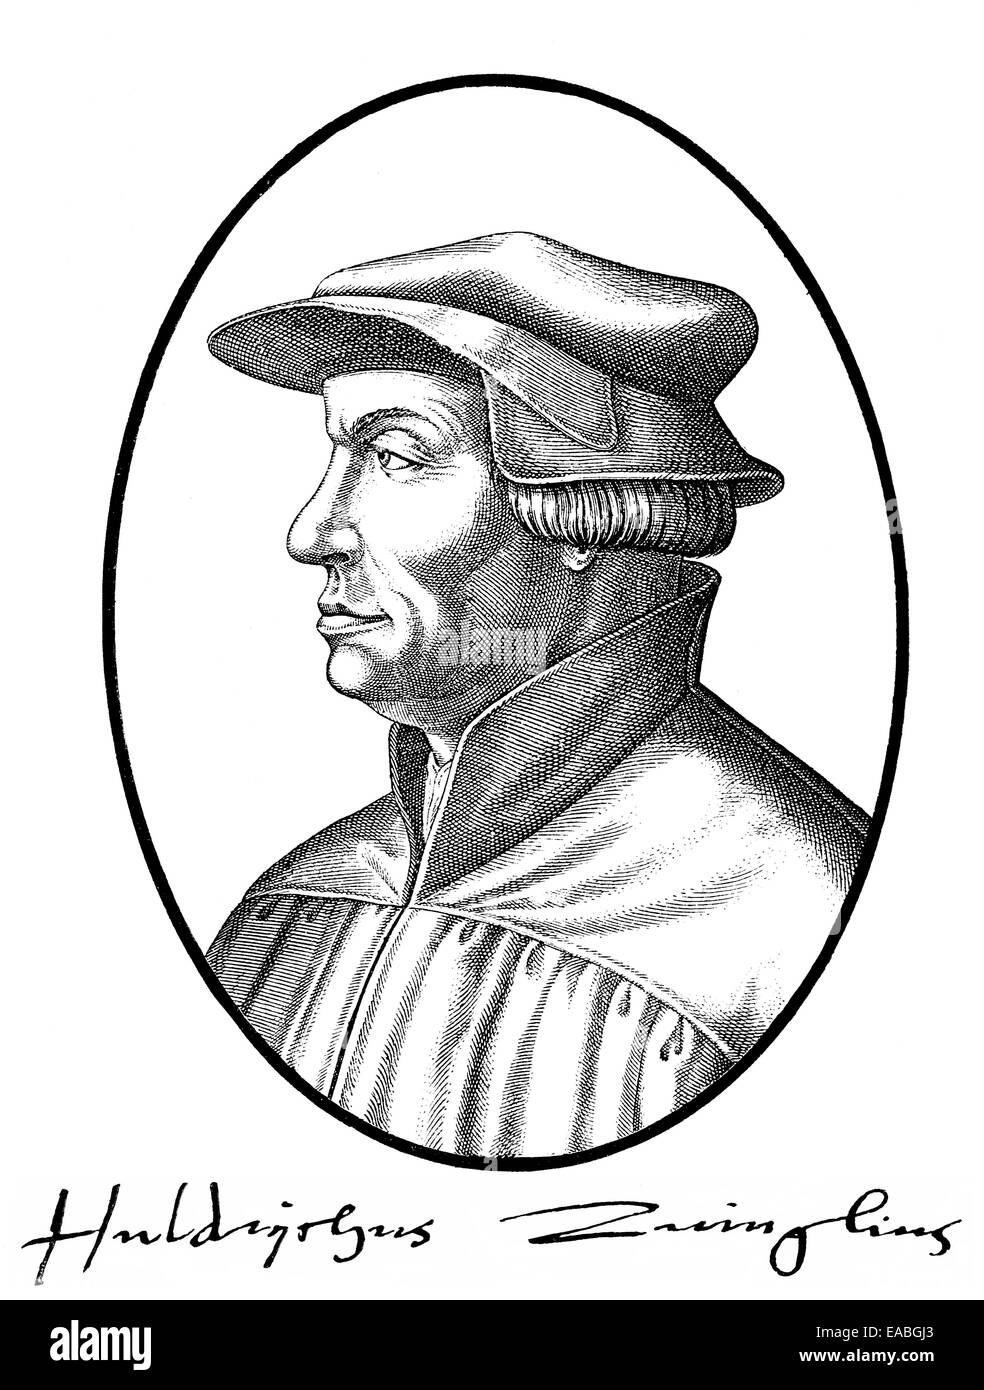 Ulrich Zwingli, 1484 - 1531, a Swiss theologian and reformer of Zurich, Portrait von Ulrich Zwingli, 1484 -1531, - Stock Image